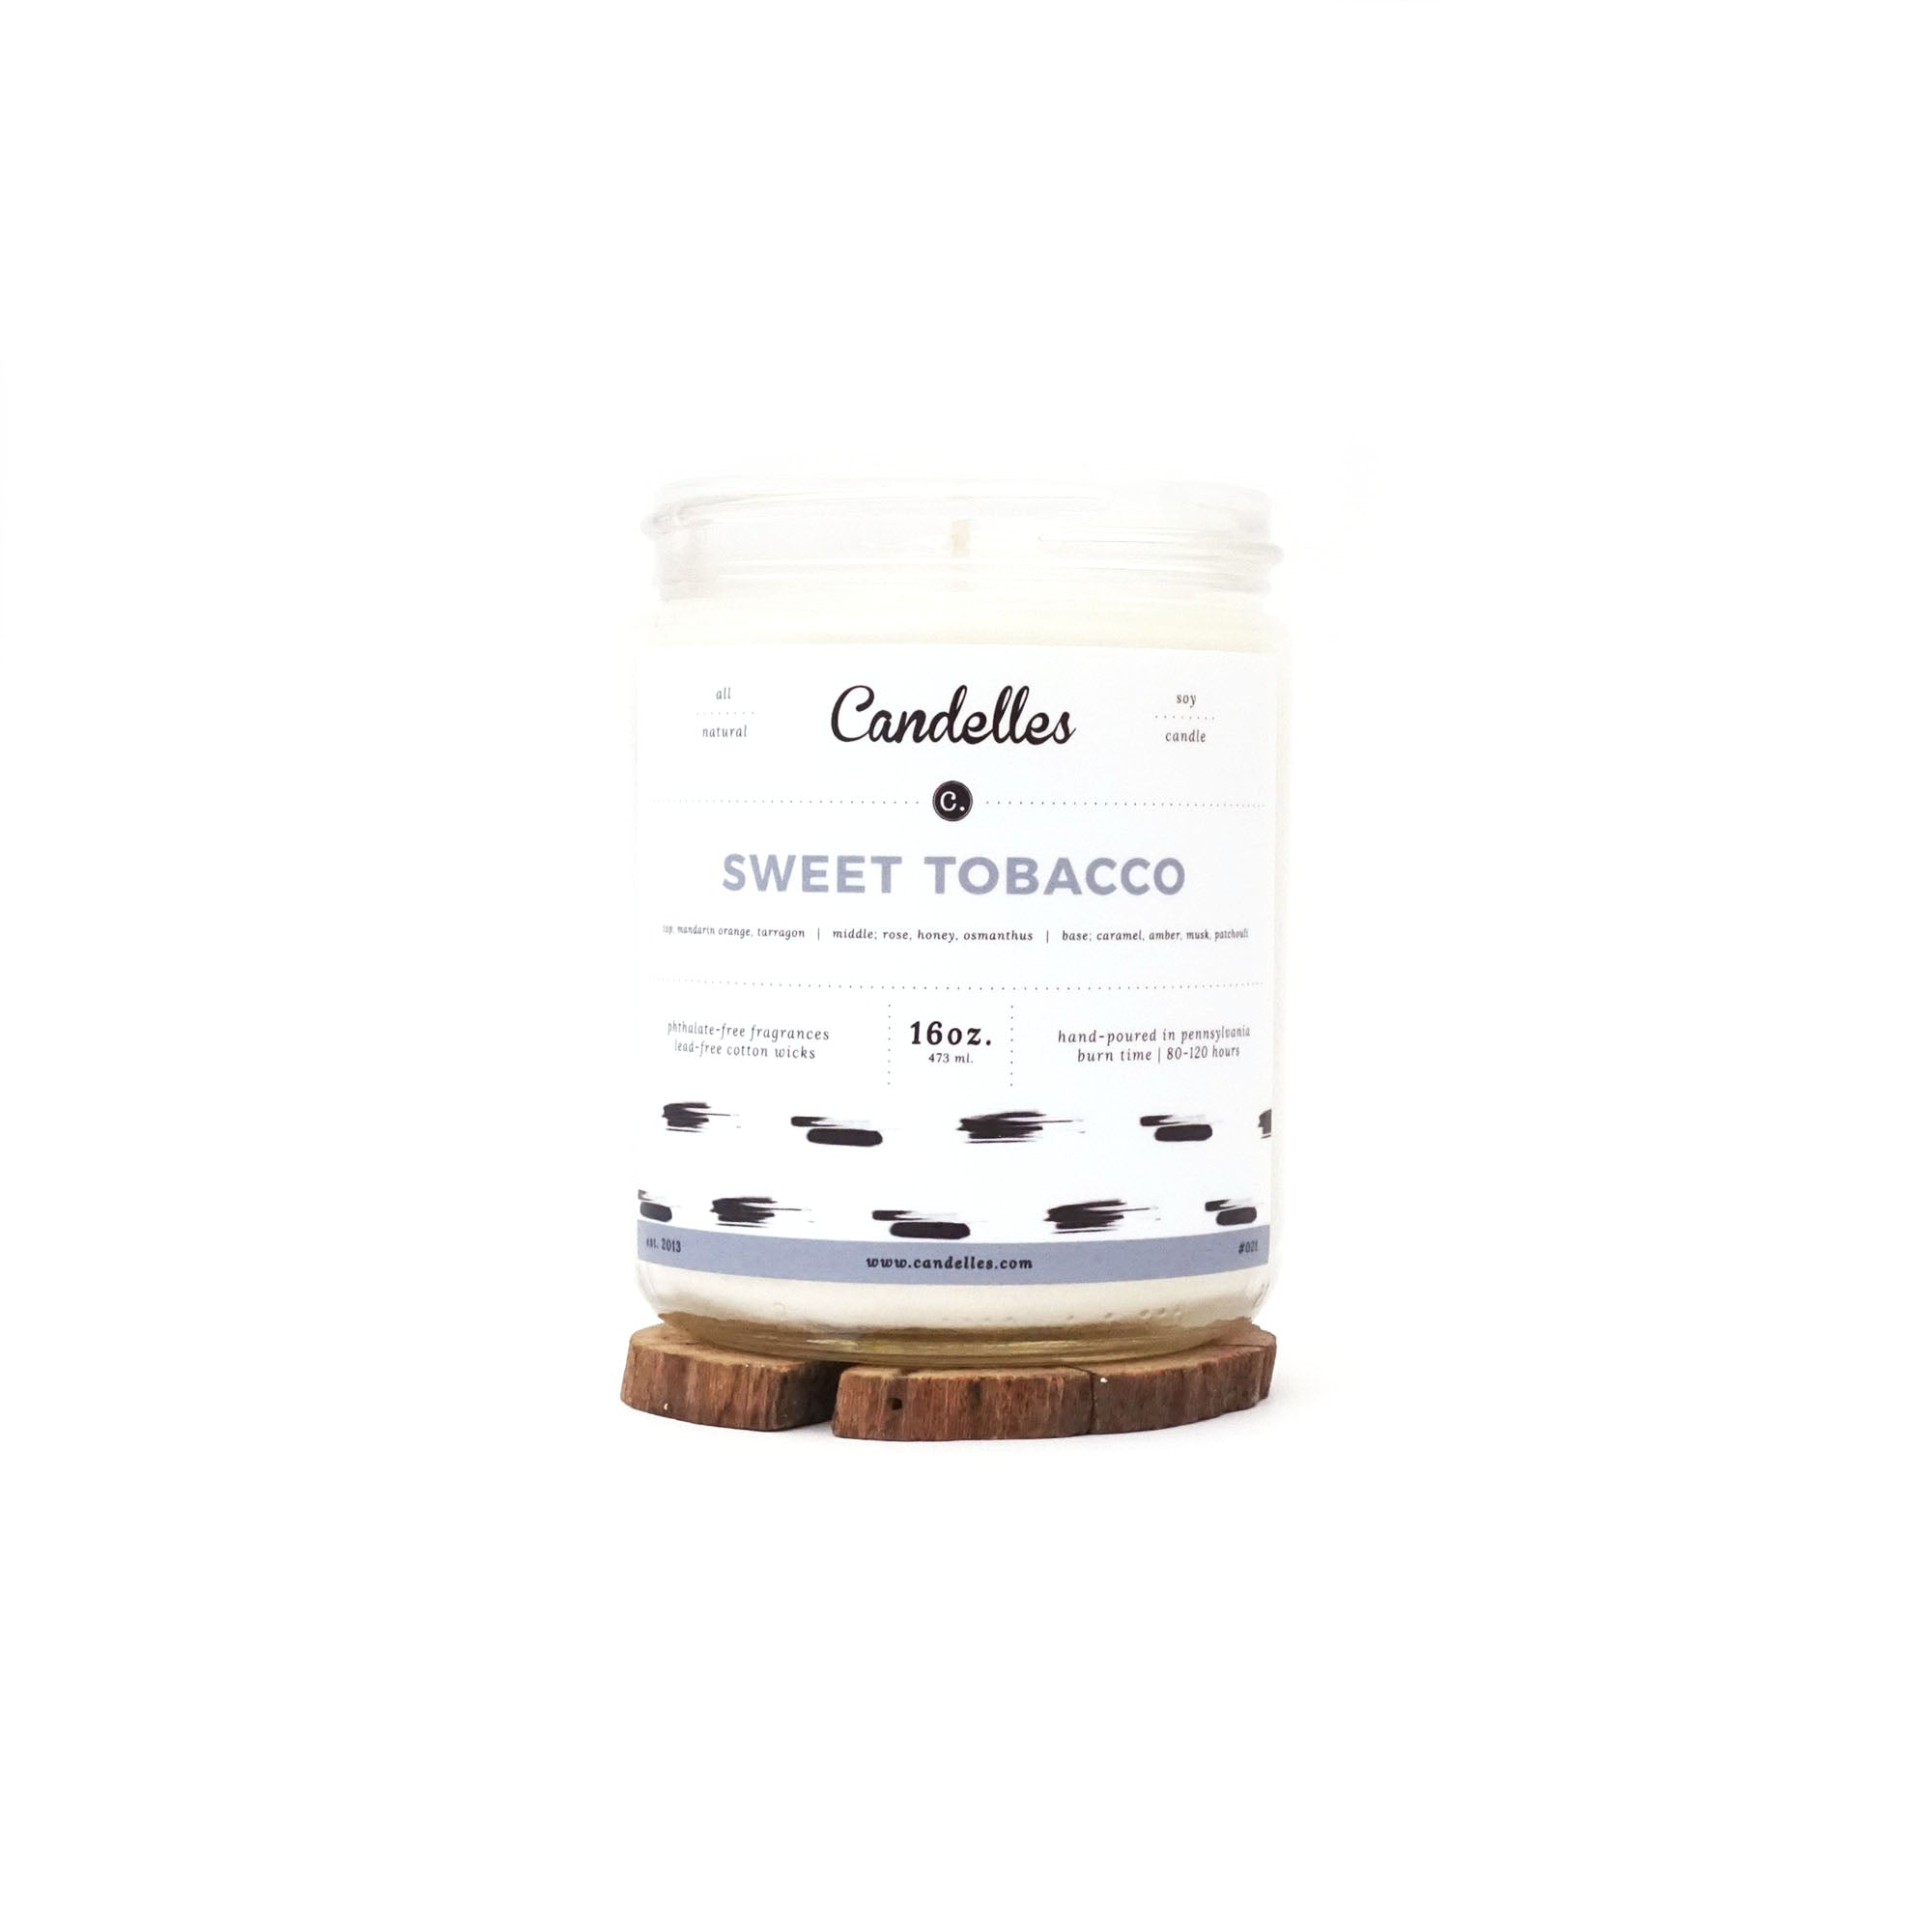 Candelles Candles - Sweet Tobacco Scented Soy Candle - 16oz.